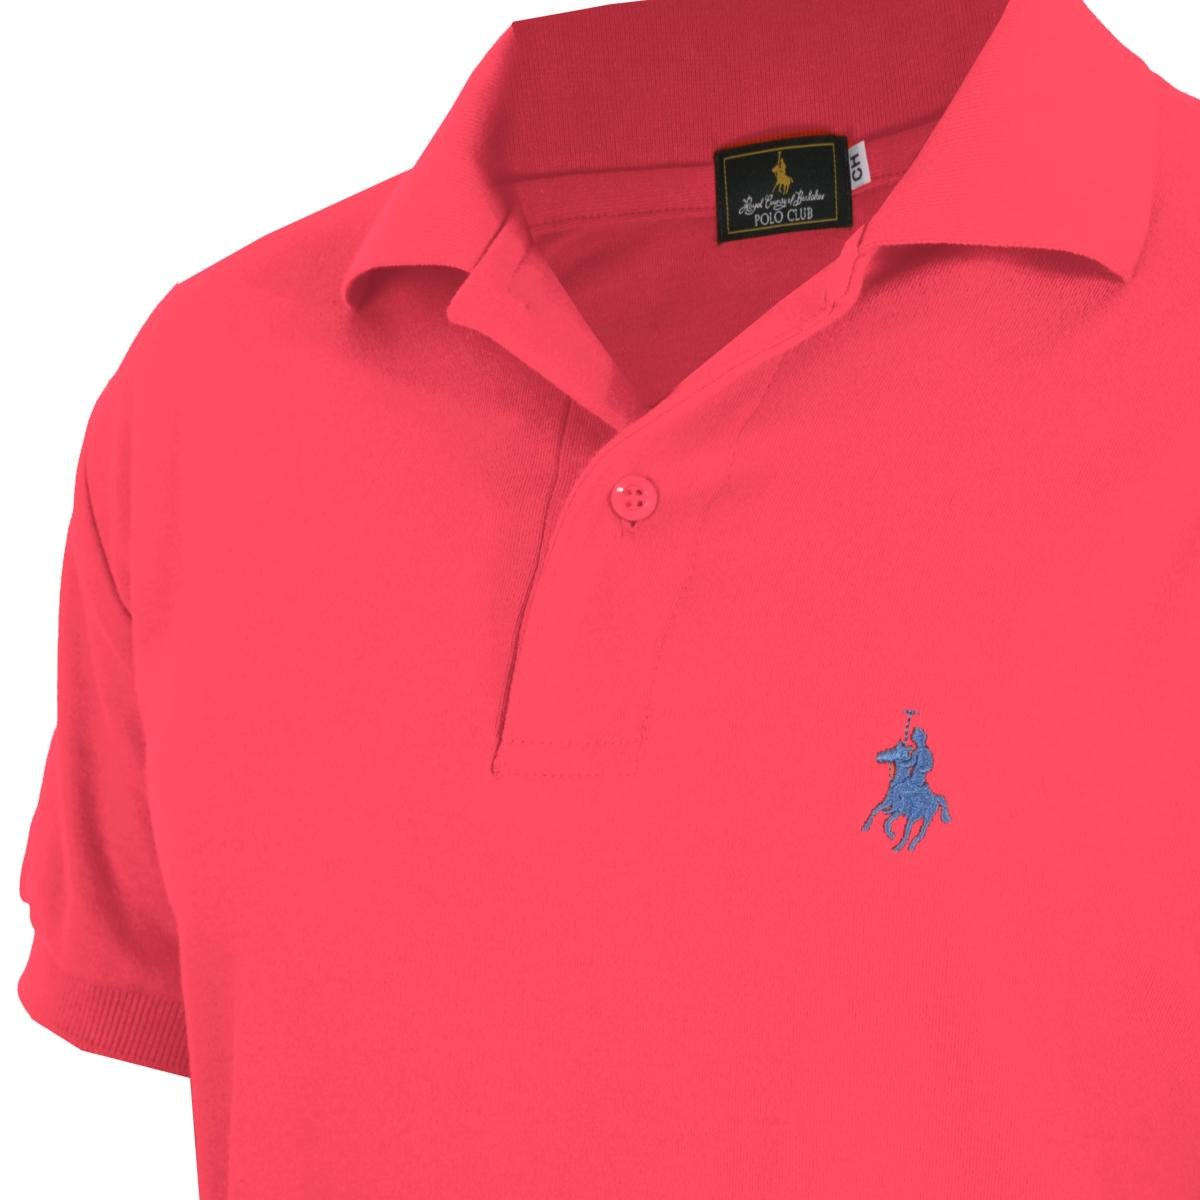 PLAYERA BÁSICA POLO CLUB  d0fdf1db44c96